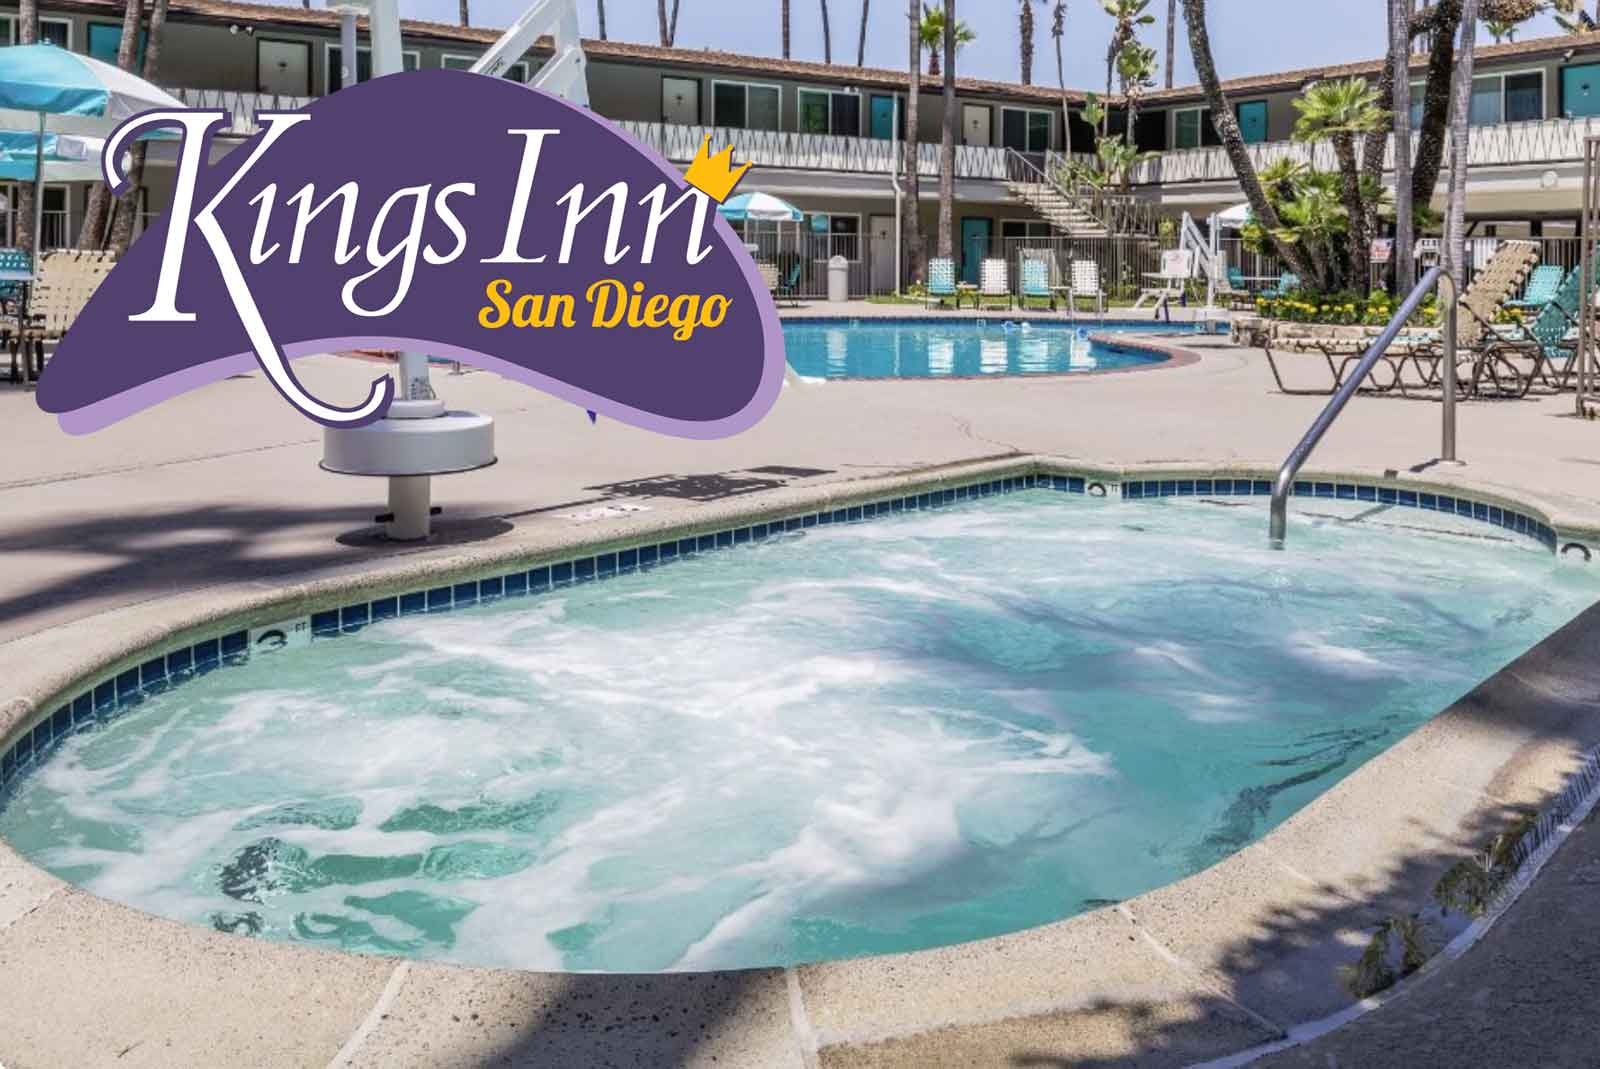 We are a fun retro san diego hotel with a pool the kings inn is perfect for you and your family and friends come take a refreshing dip in our outdoor